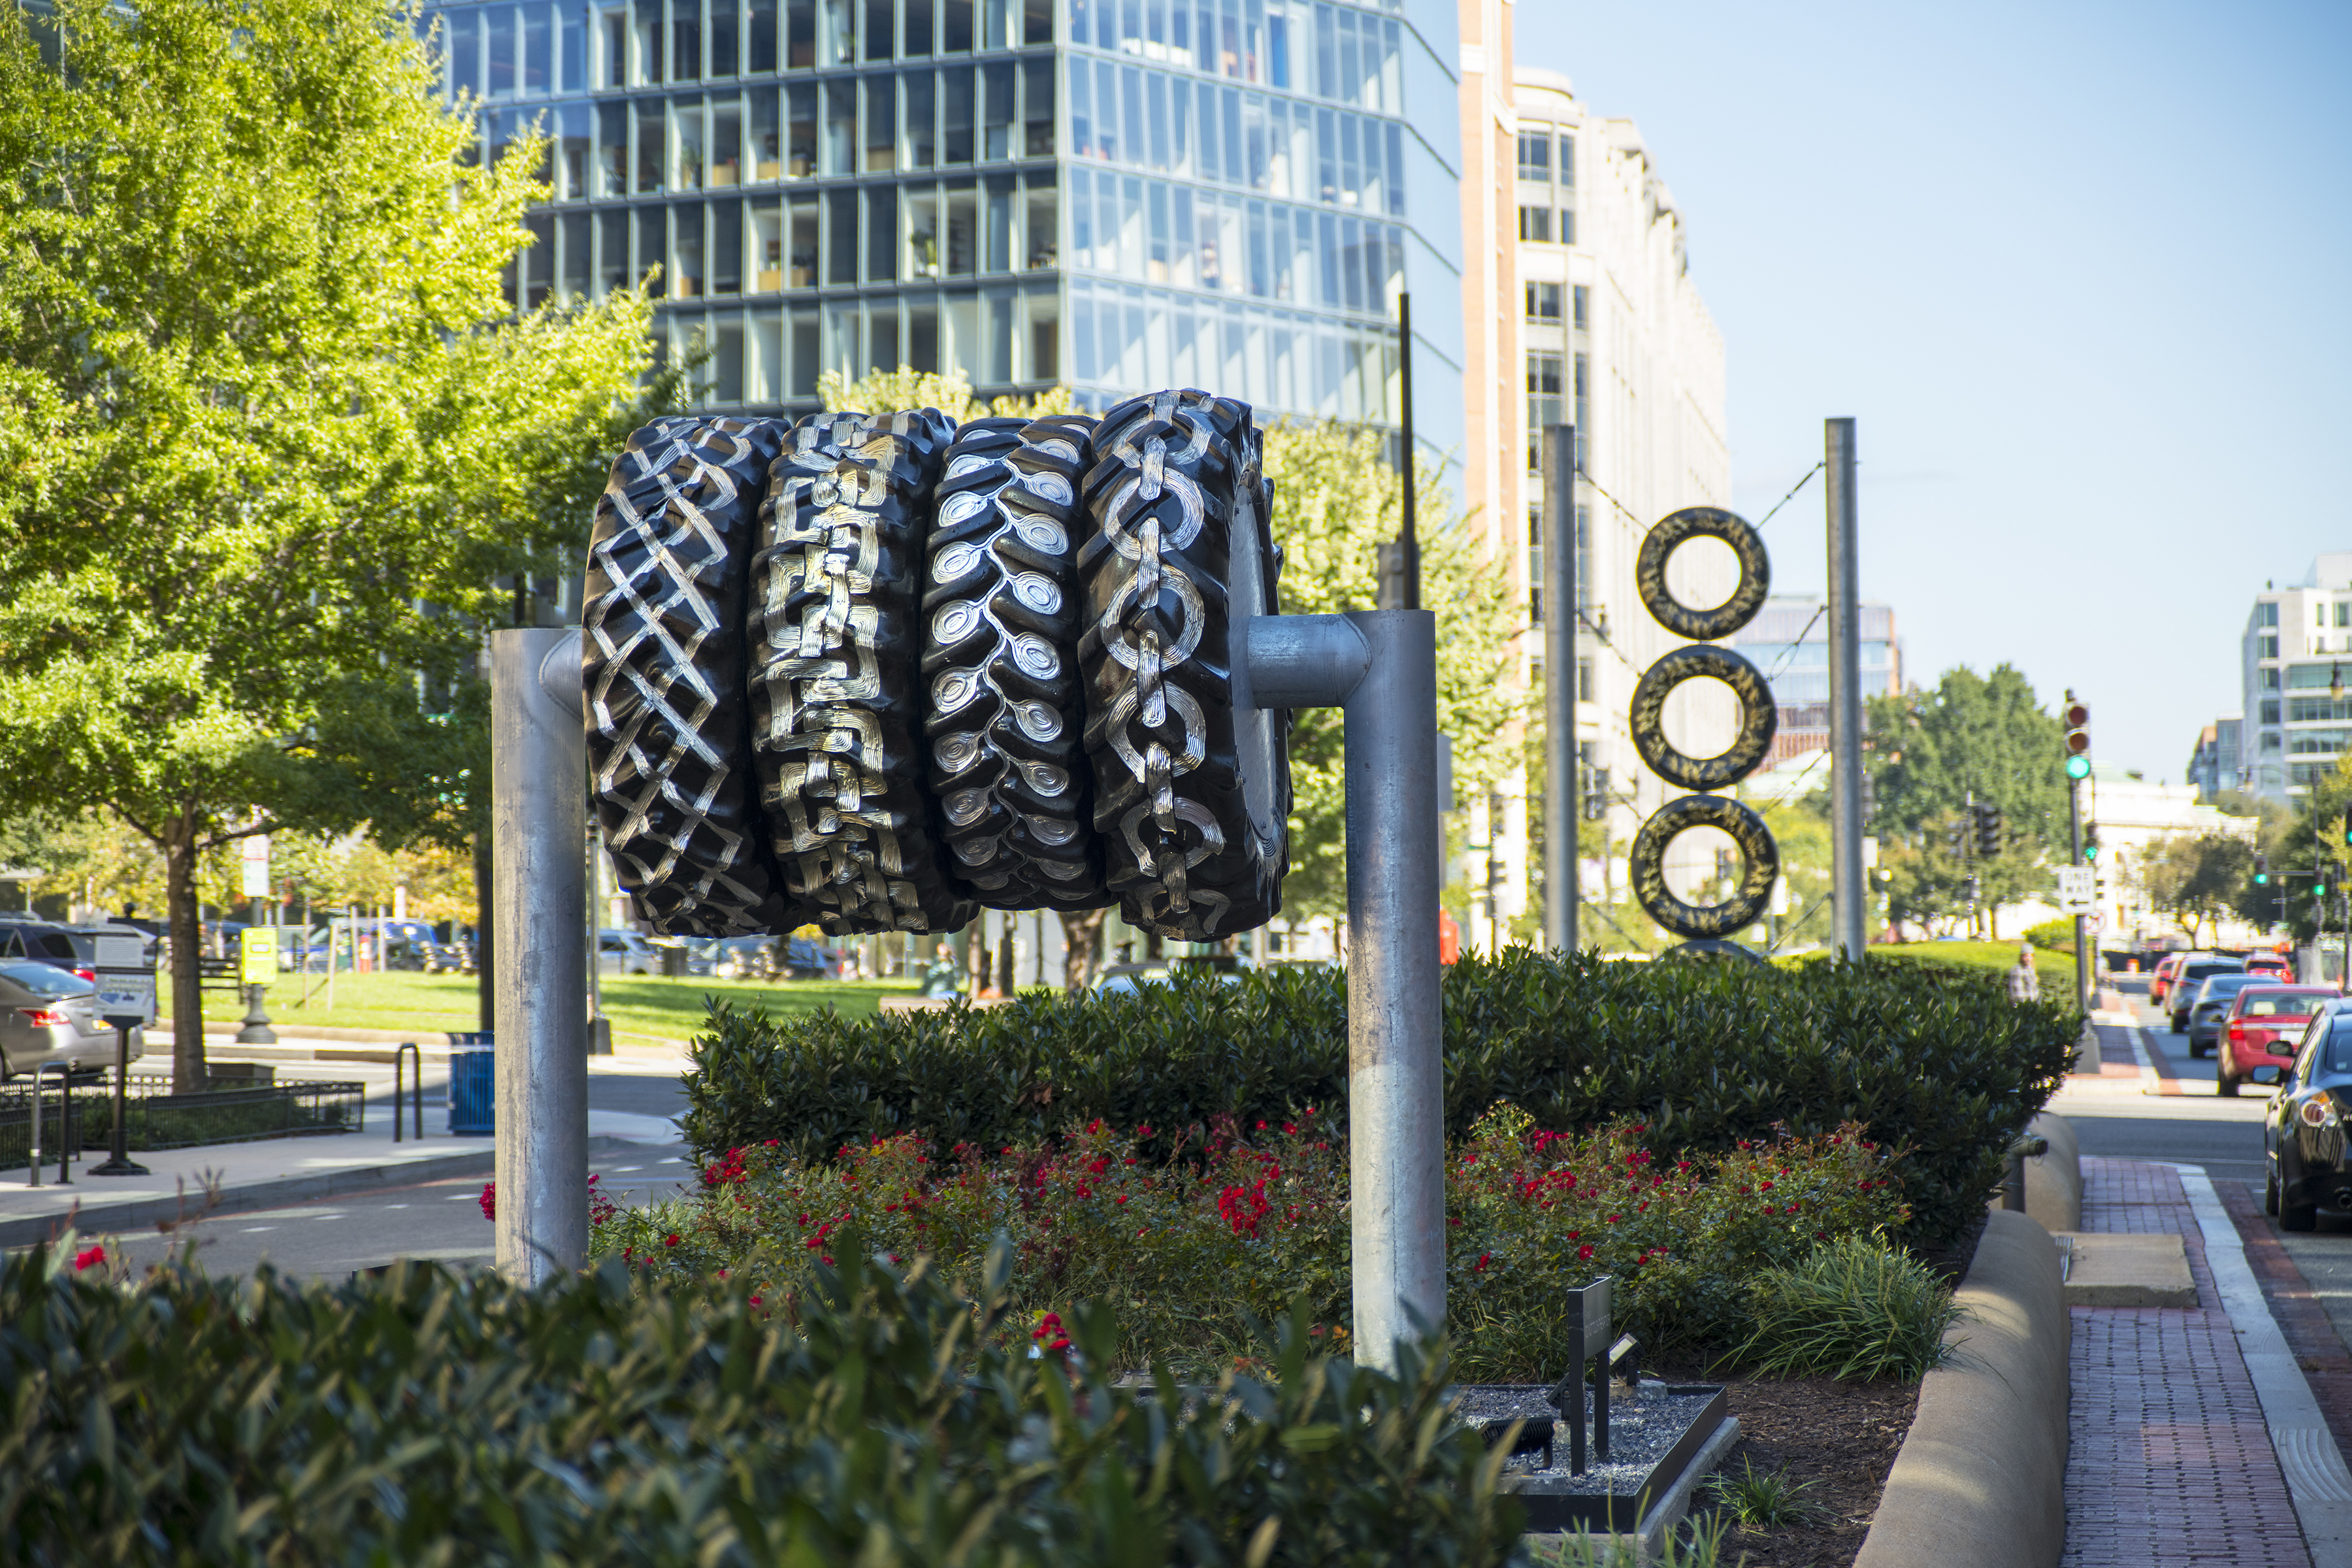 "An installation shot of Bestabee Romero's ""Signals of a Long Road Together"" installation on New York Avenue in Washington, D.C. The tire sculptures are suspended in the median of the road--one with four tires horizontally placed close together; another in the background with four tires placed on top of one another vertically."